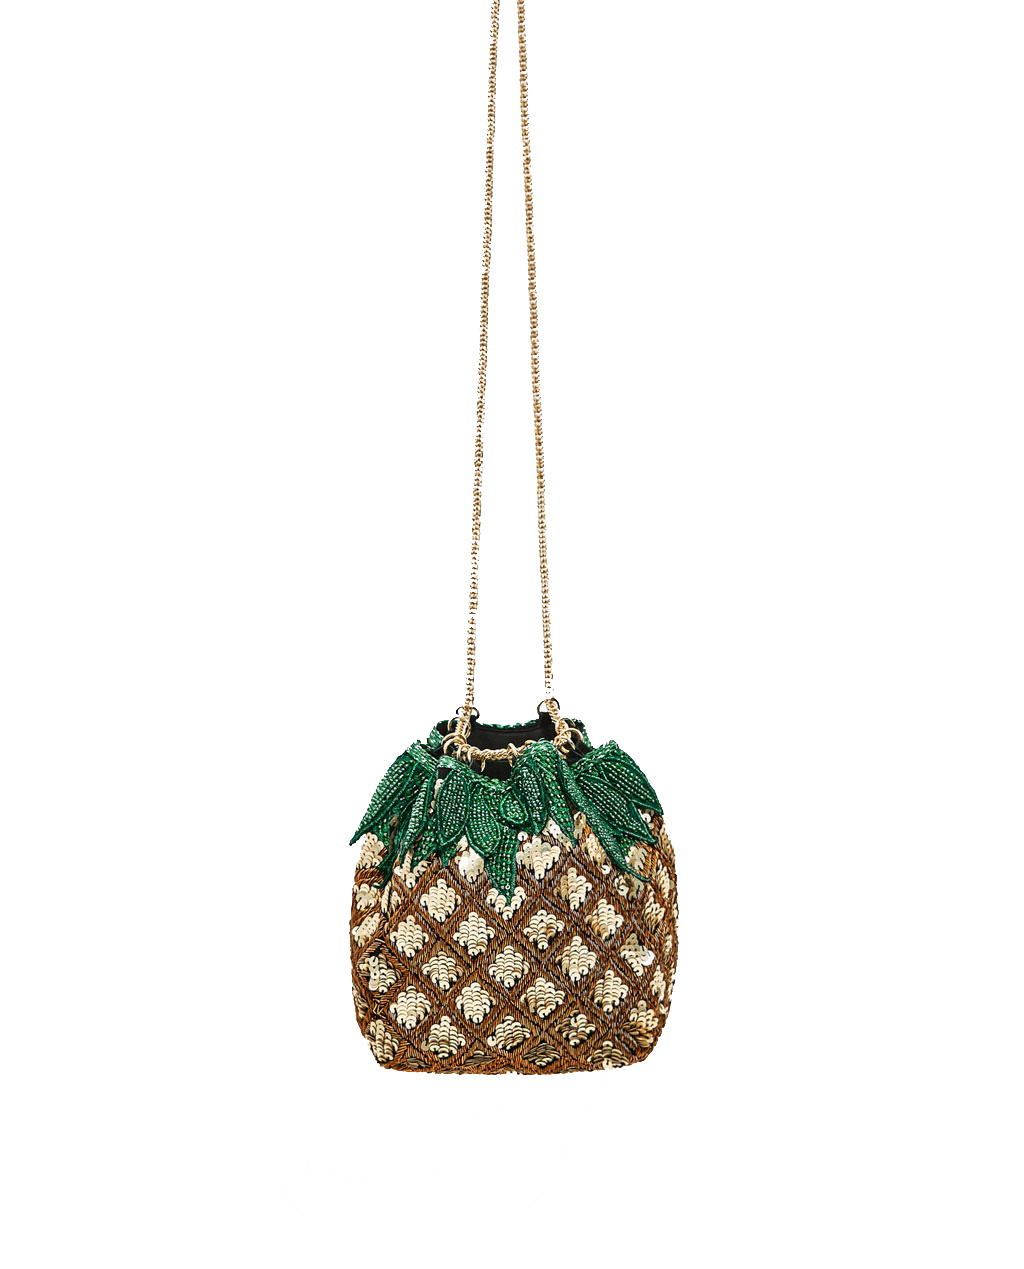 Zara Pineapple Bucket Bag